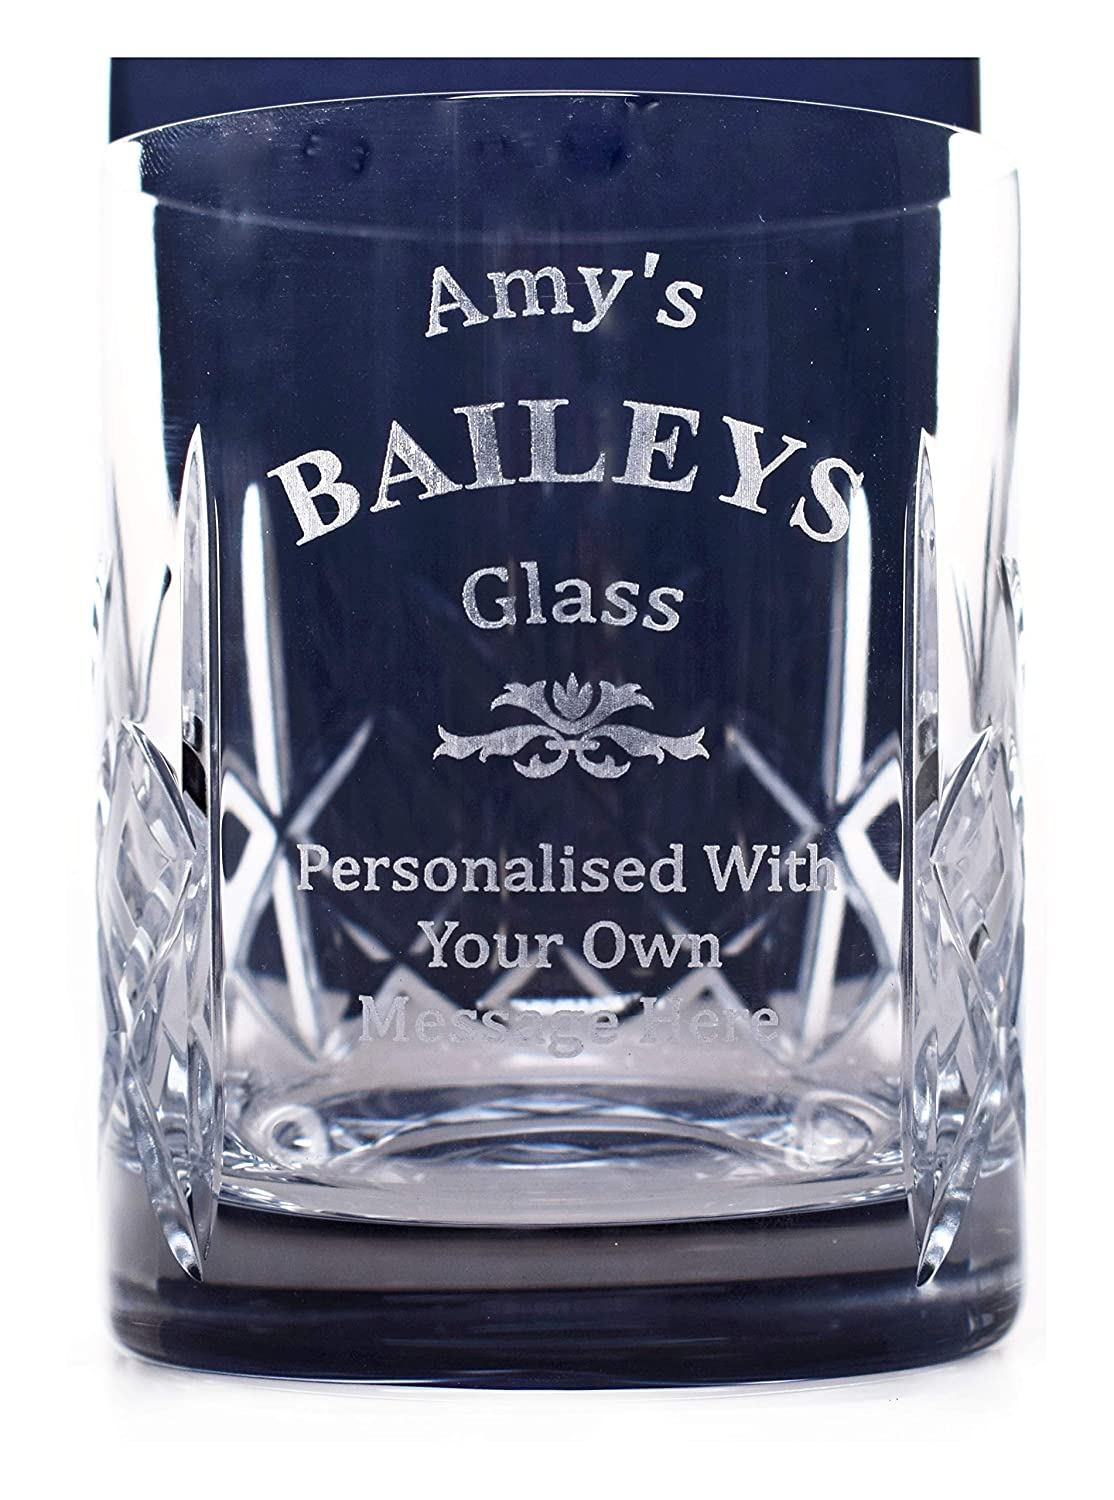 Engraved/Personalised BAILEYS Crystal Glass Tumbler Gift For Mothers Day/Valentines Day/Women/Men/18th/21st/30th/40th/50th/Birthday/Christmas/Mum/Step Dad/Nanny/Bridesmaid/Mother of the Bride/Wedding/Wife/Daughter/Grandad/Daddy/Mummy/Nan/Son/Sister/Auntie